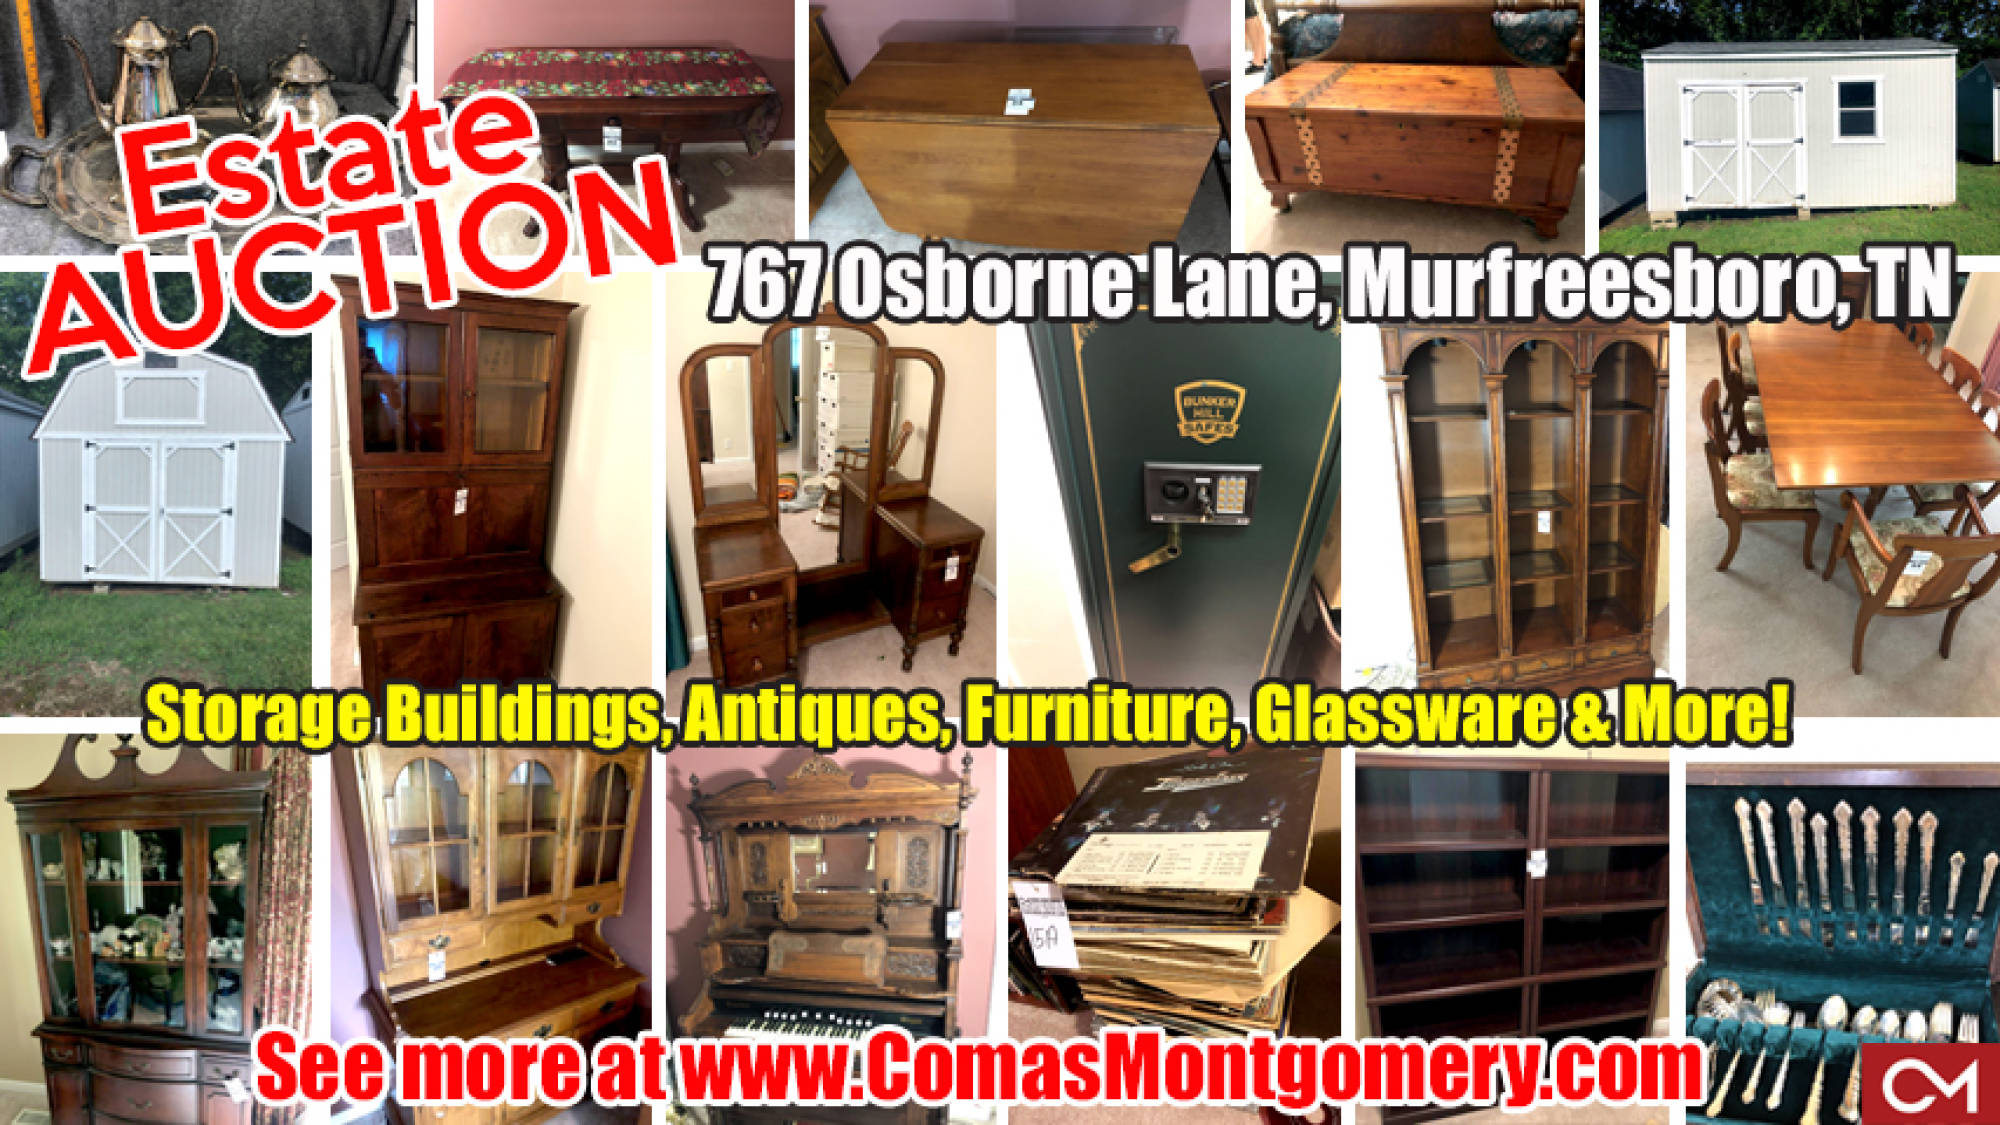 Furniture, Antiques, Storage Building, Glassware, Estate, Auction, For Sale, Murfreesboro, Tennessee, Comas, Montgomery, Silverware, Records, Tools, China Cabinet, Bedroom Suite, Appliances